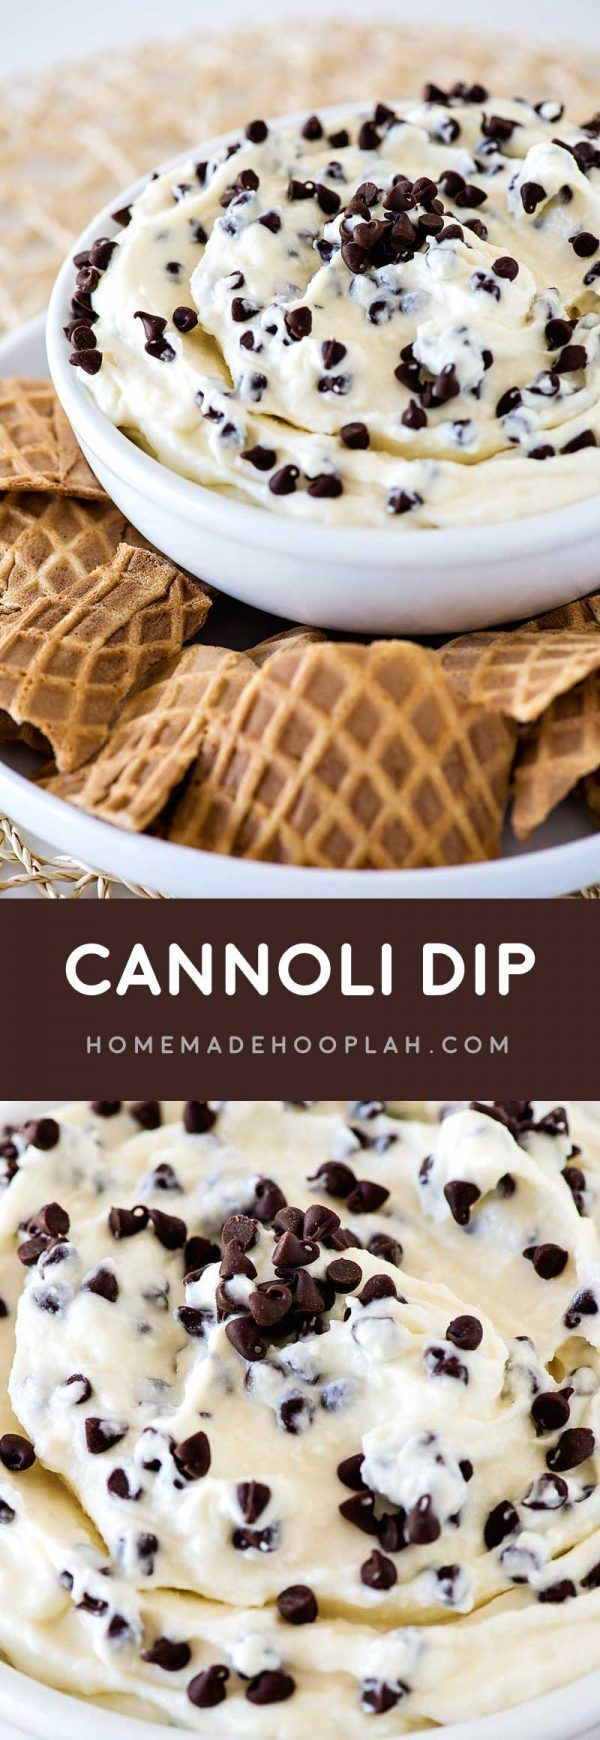 Cannoli Dip An easy cannoli dip that doesnt tas Cannoli Dip An easy cannoli dip that doesnt taste like cream cheese mixed with delicious mini chocolate chips and served w...